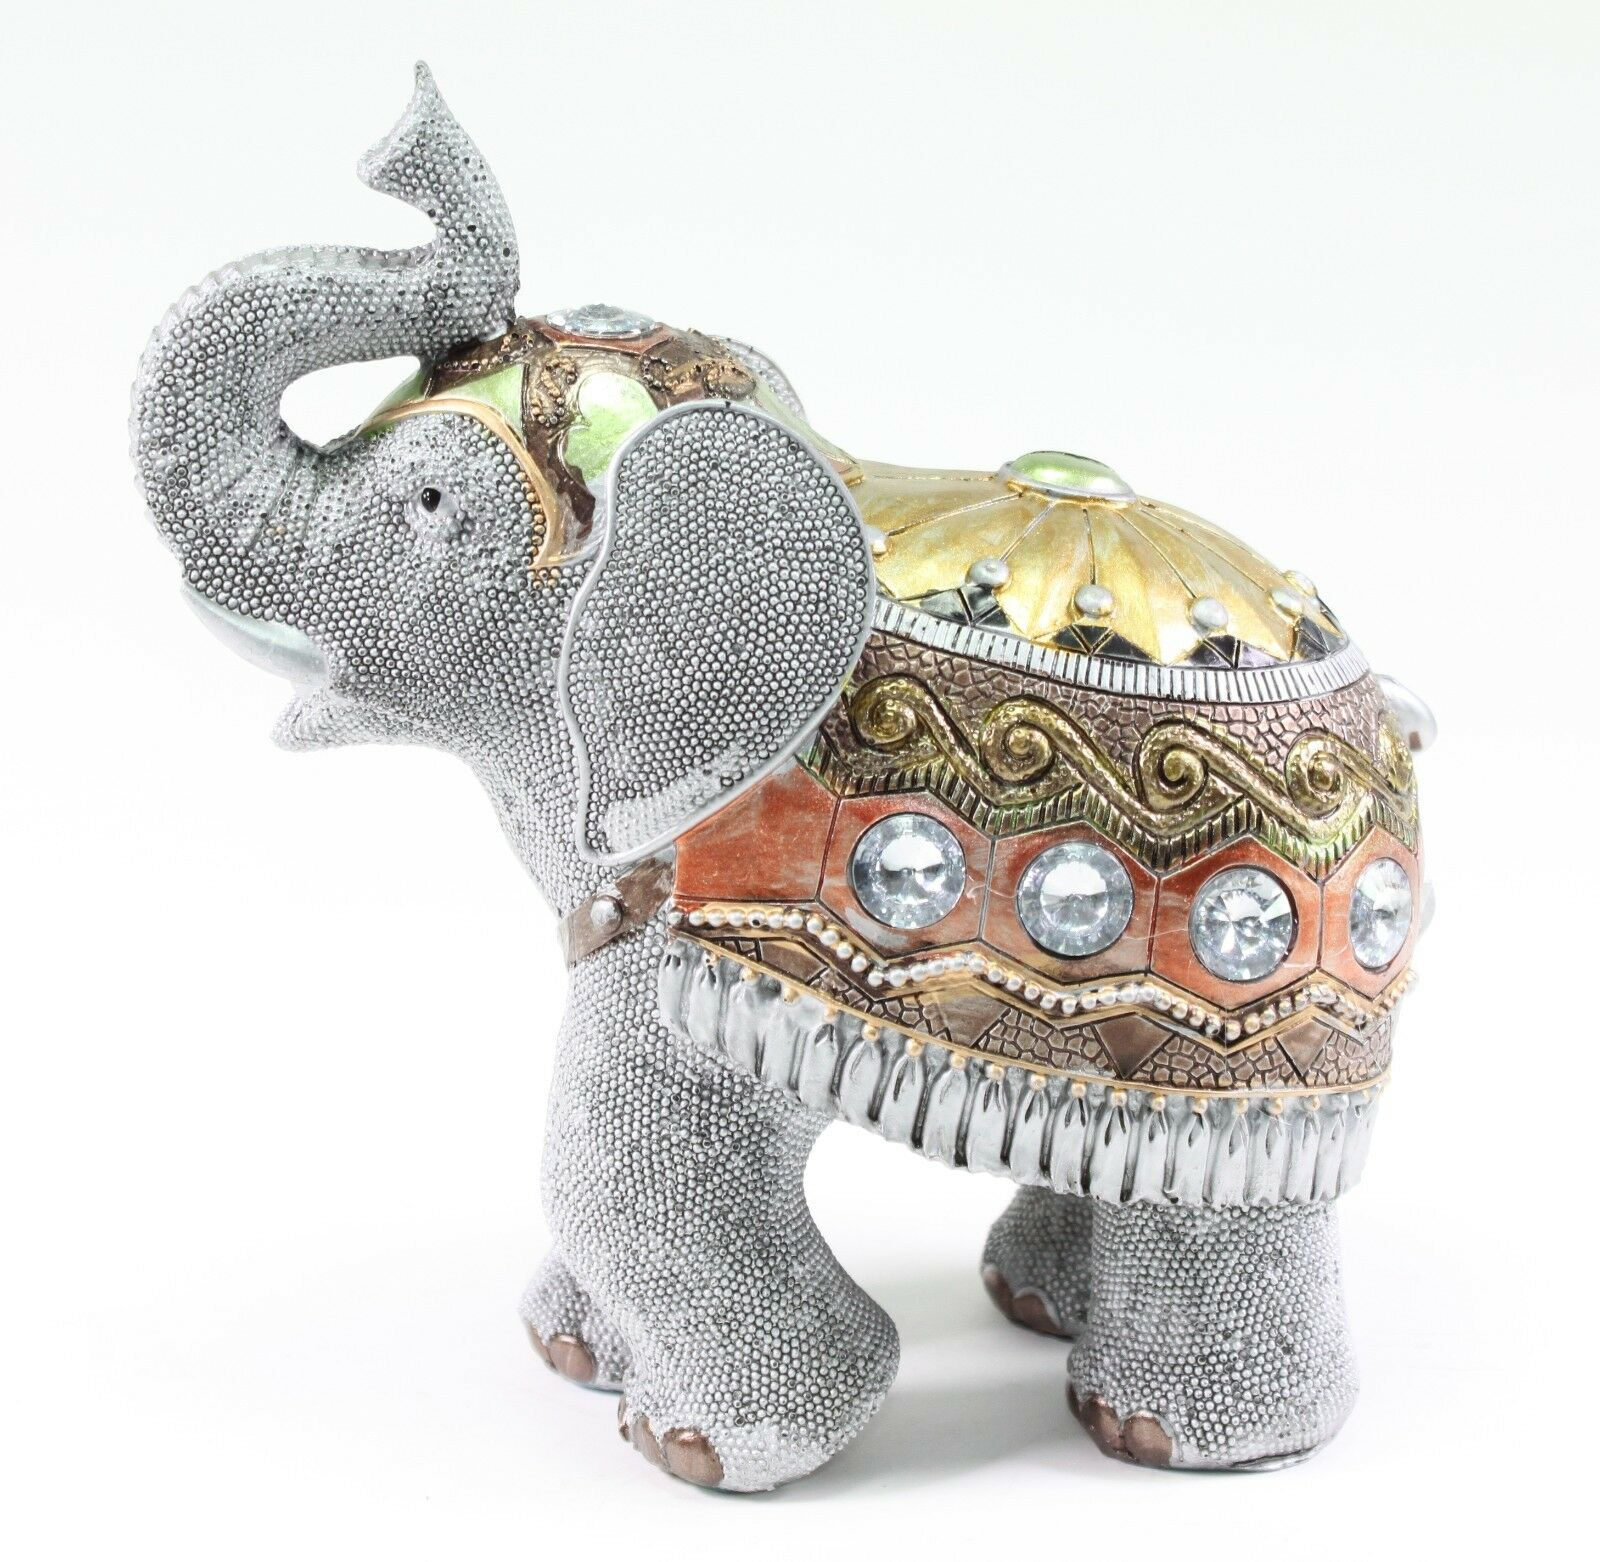 Feng shui 7 5 gray elephant trunk statue lucky figurine gift home decor ebay Elephant home decor items